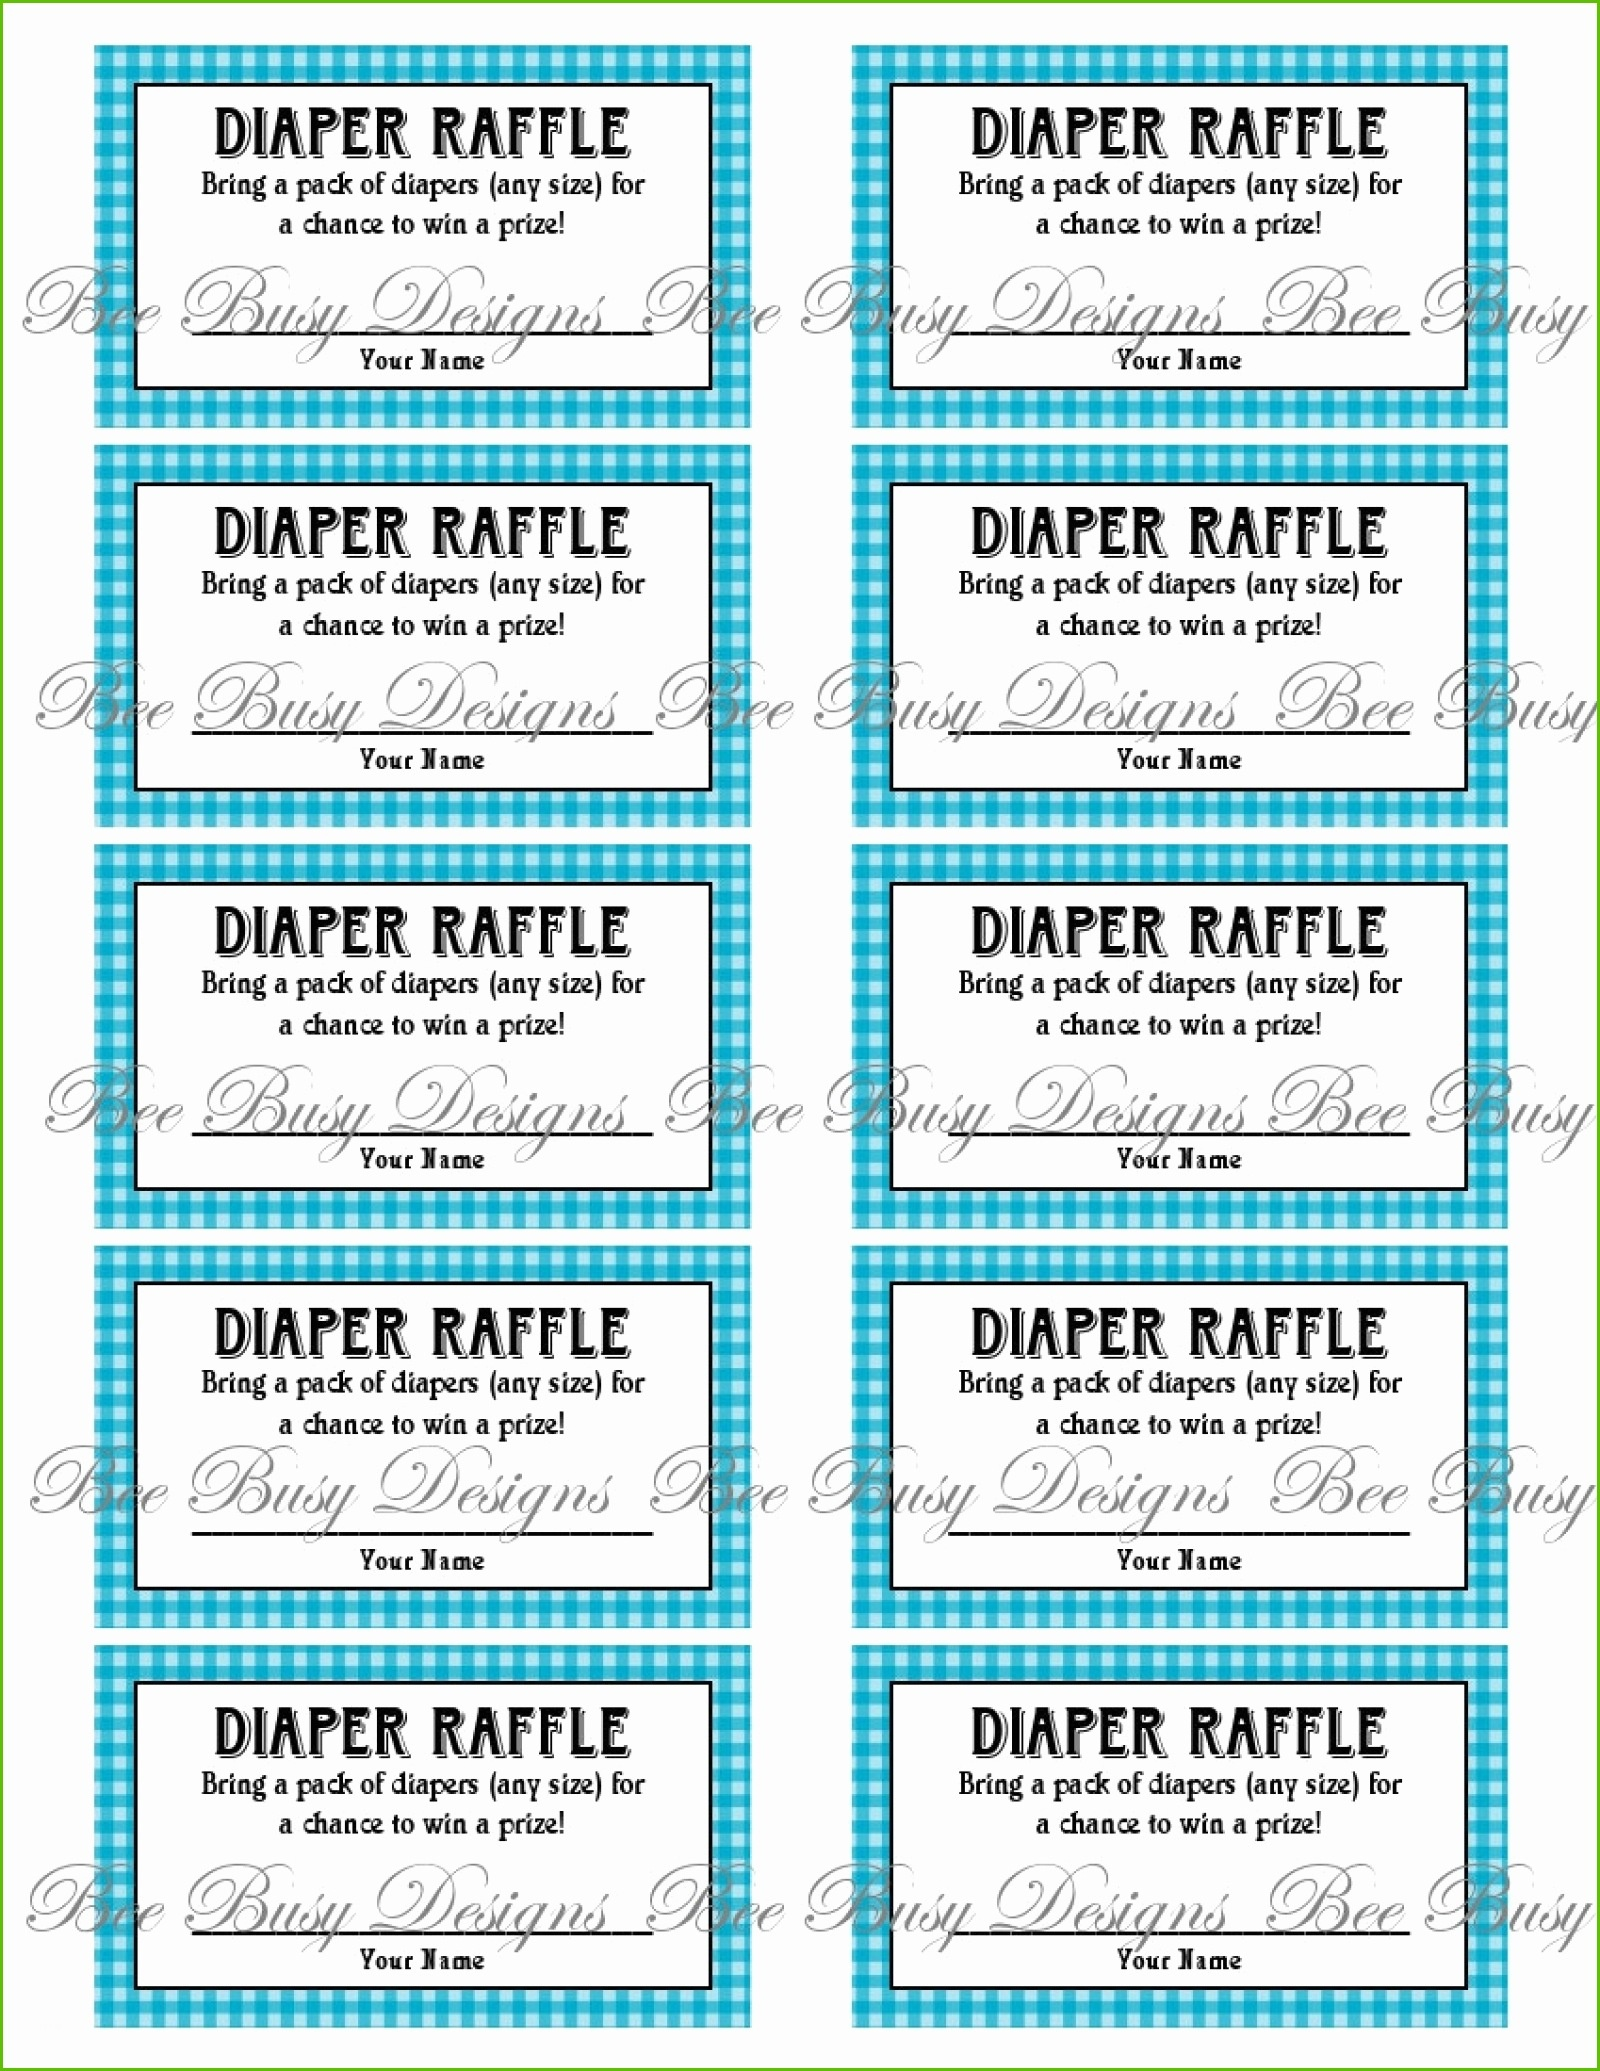 Review Free Printable Diaper Raffle Tickets For Baby Shower - Ideas - Free Printable Baby Shower Diaper Raffle Tickets